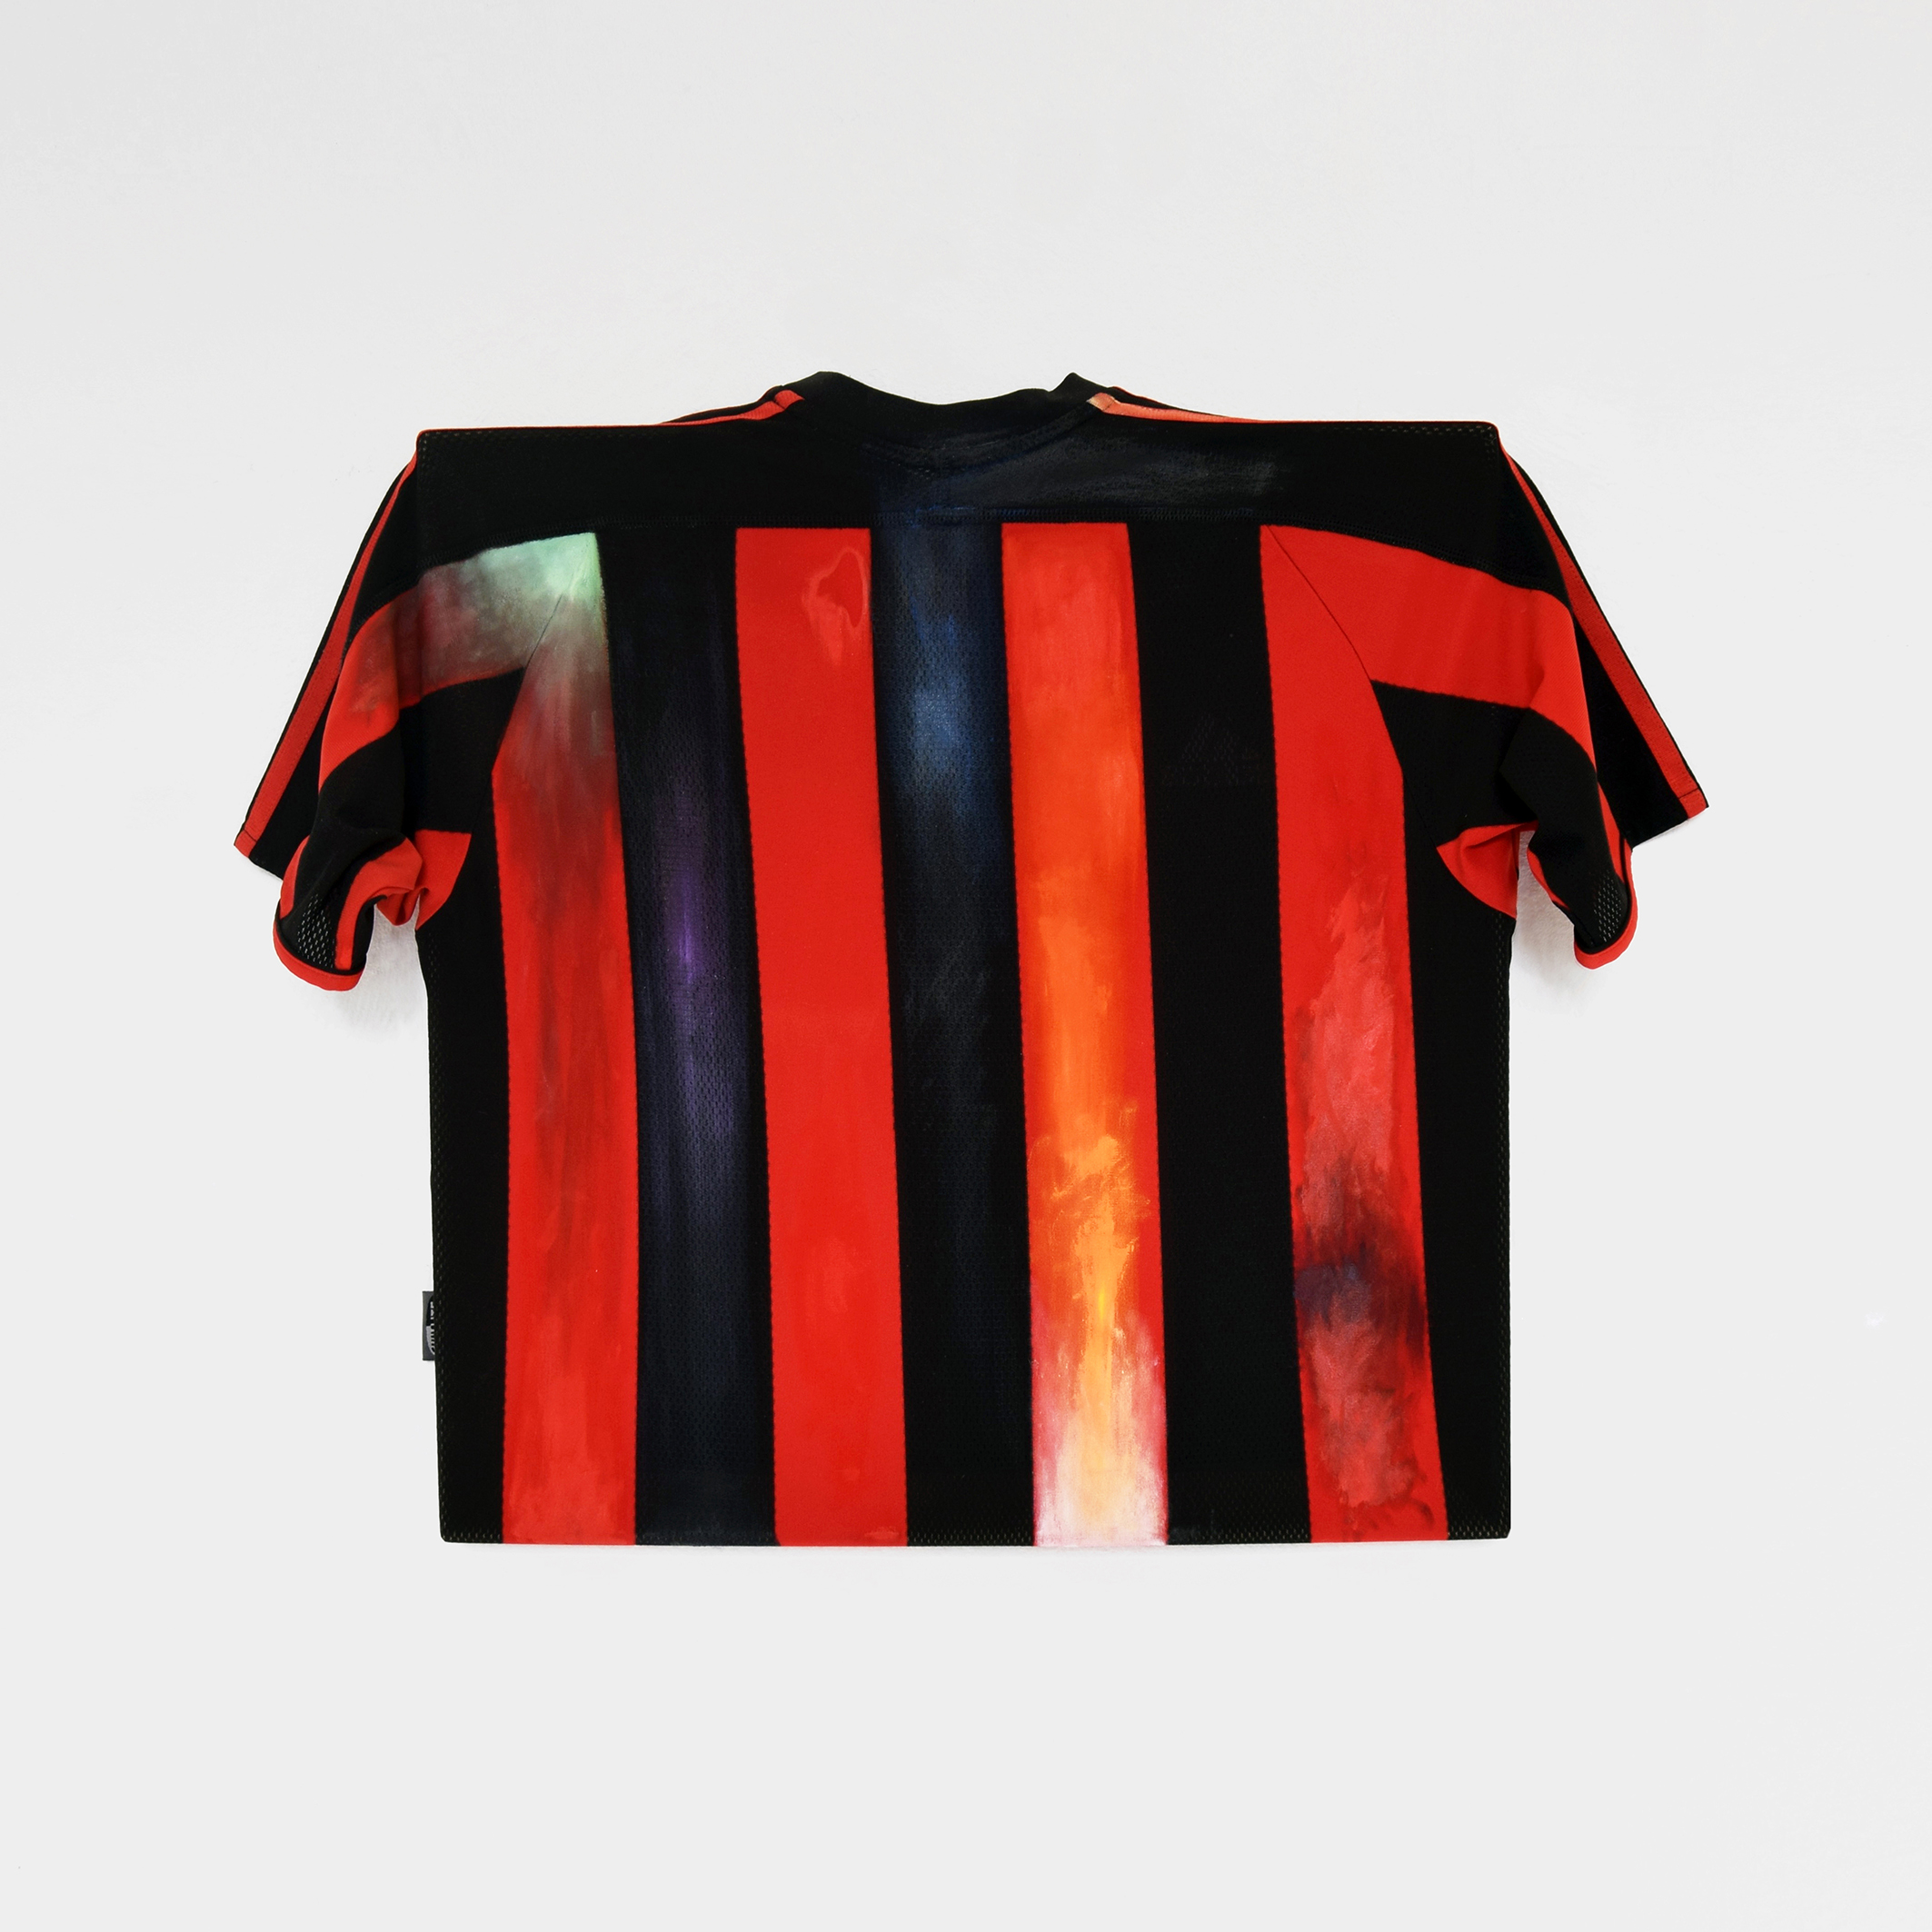 UPO (red and black) 2020_Luca Bosani